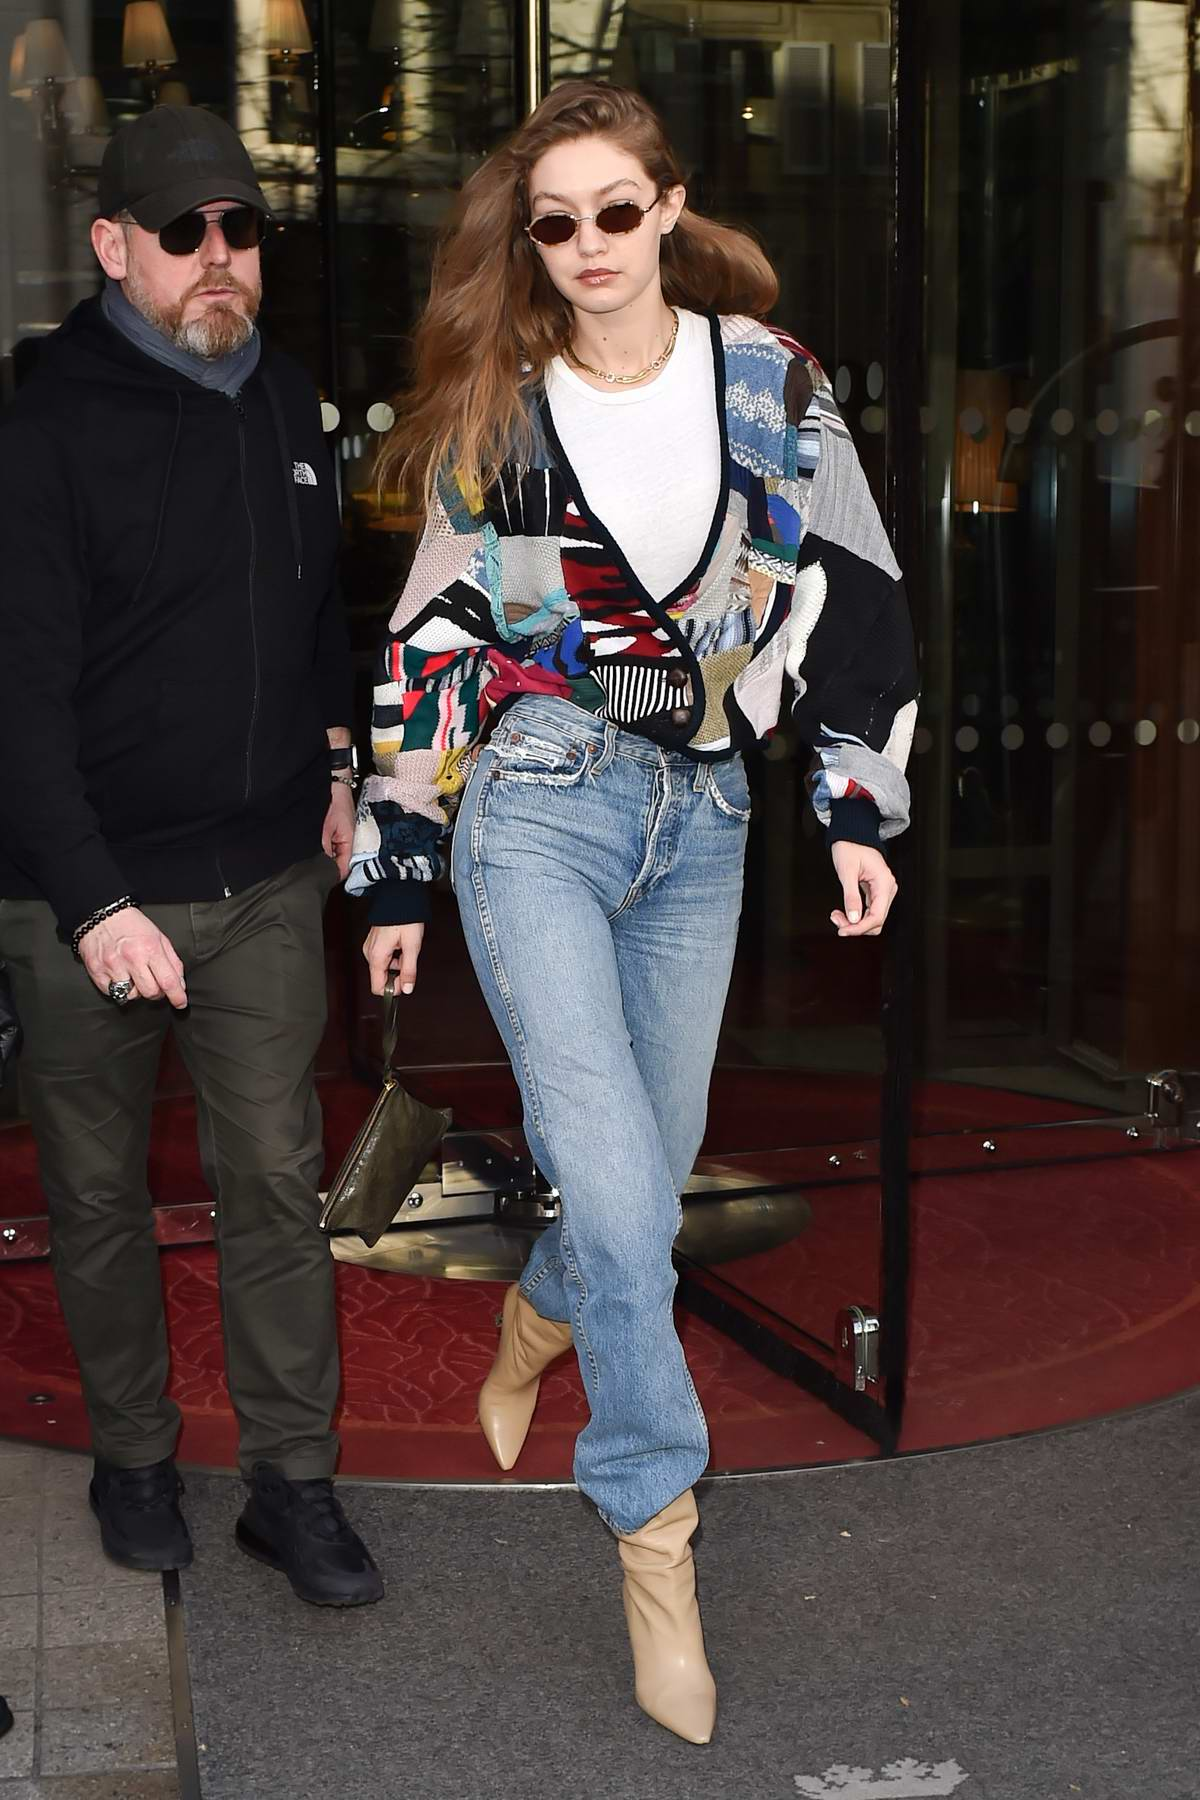 Gigi Hadid makes a fashionable exit as she heads out for a Fashion Show in Paris, France